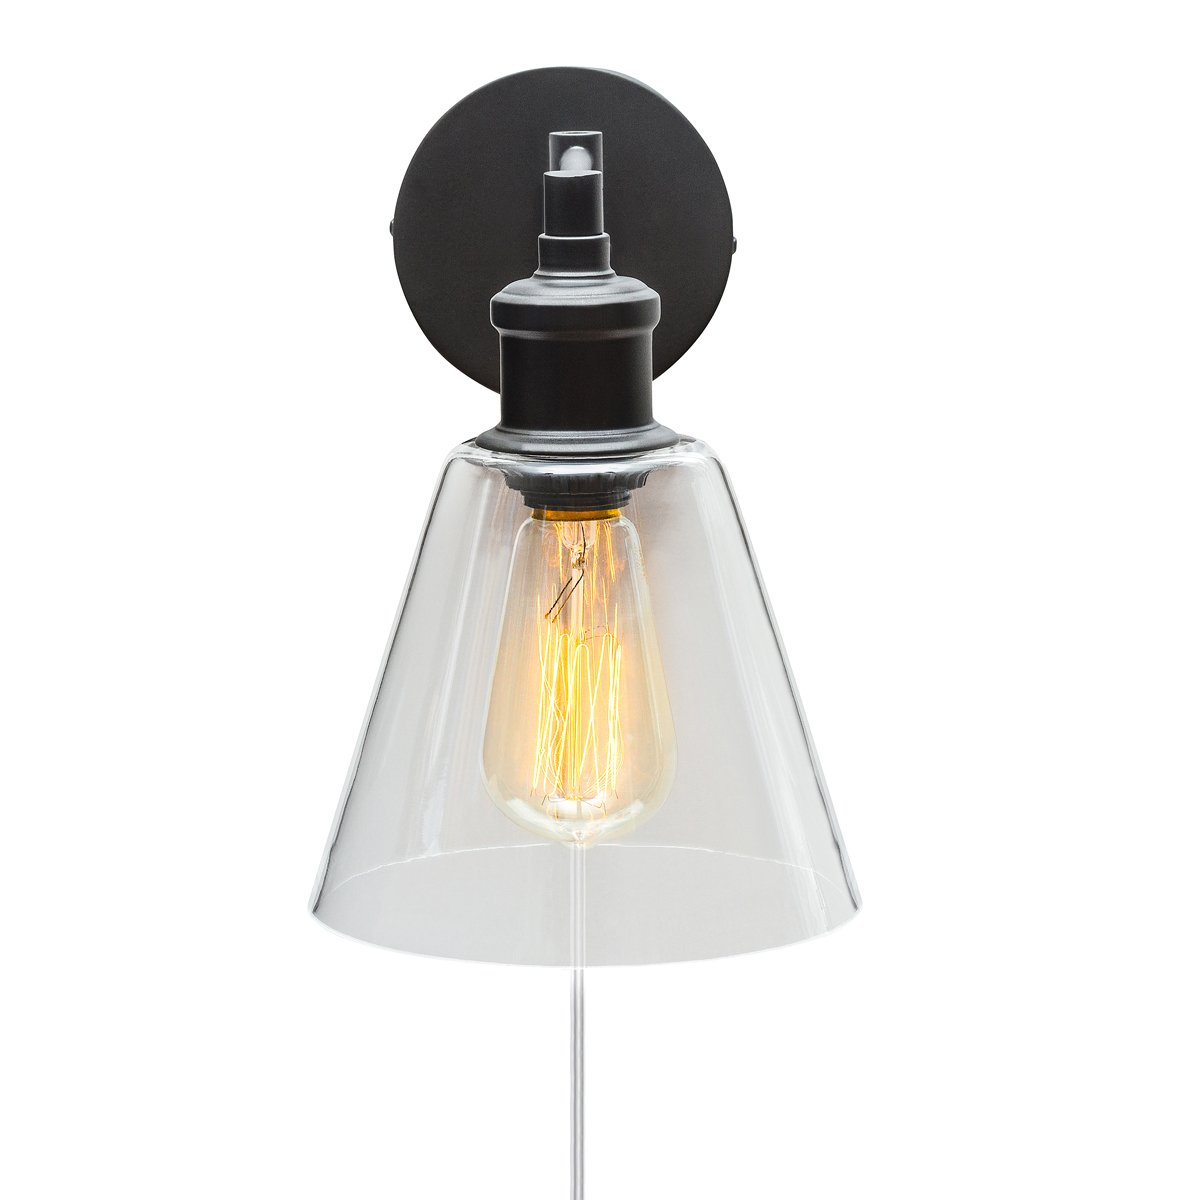 Globe Electric LeClair 1 Light Plug In Or Hardwire Industrial Wall Sconce Dark Bronze Finish On Off Rotary Switch Canopy 6 Foot Clear Cord